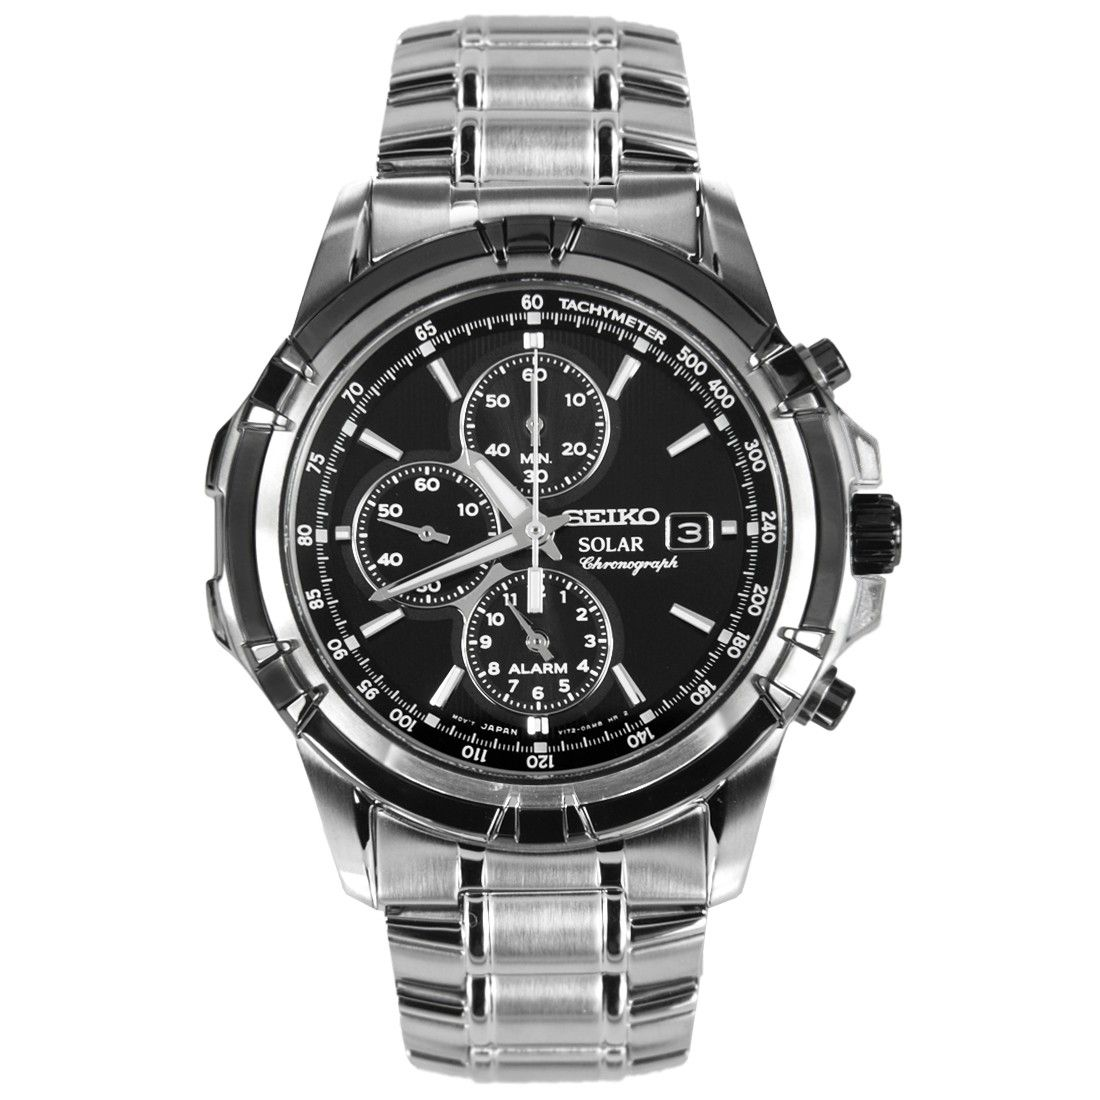 125f1ed54 Buy Seiko Solar Chronograph Mens Sports Watch SSC147P1 SSC147P SSC147  online at Special Price.Free Shipping USA Singapore Australia Malaysia New  Zealand